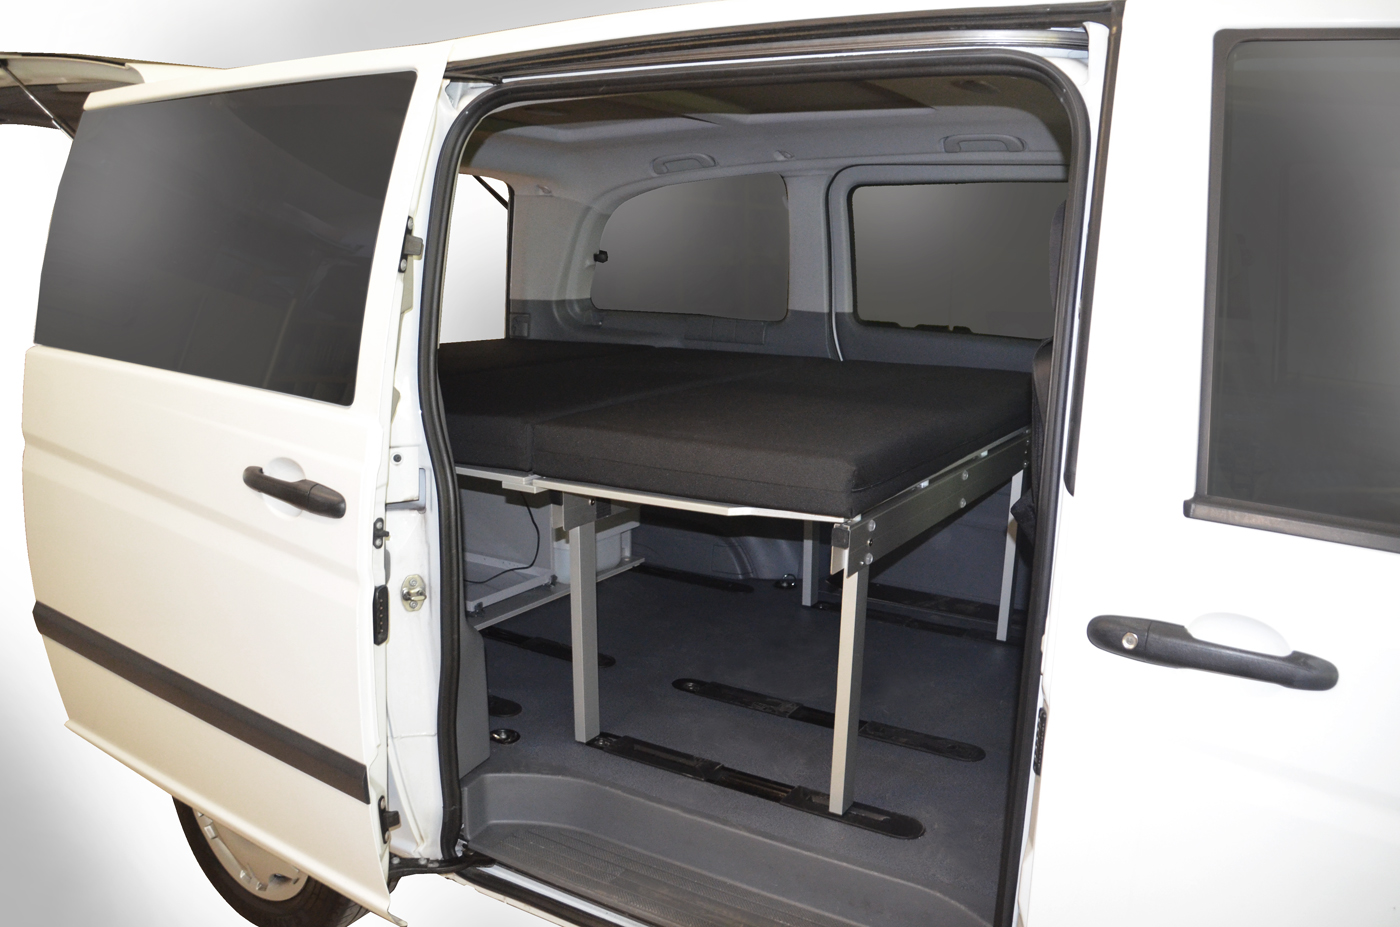 Vanessa Mobilcamping Online Shop Sleeping In Your Mercedes Vito